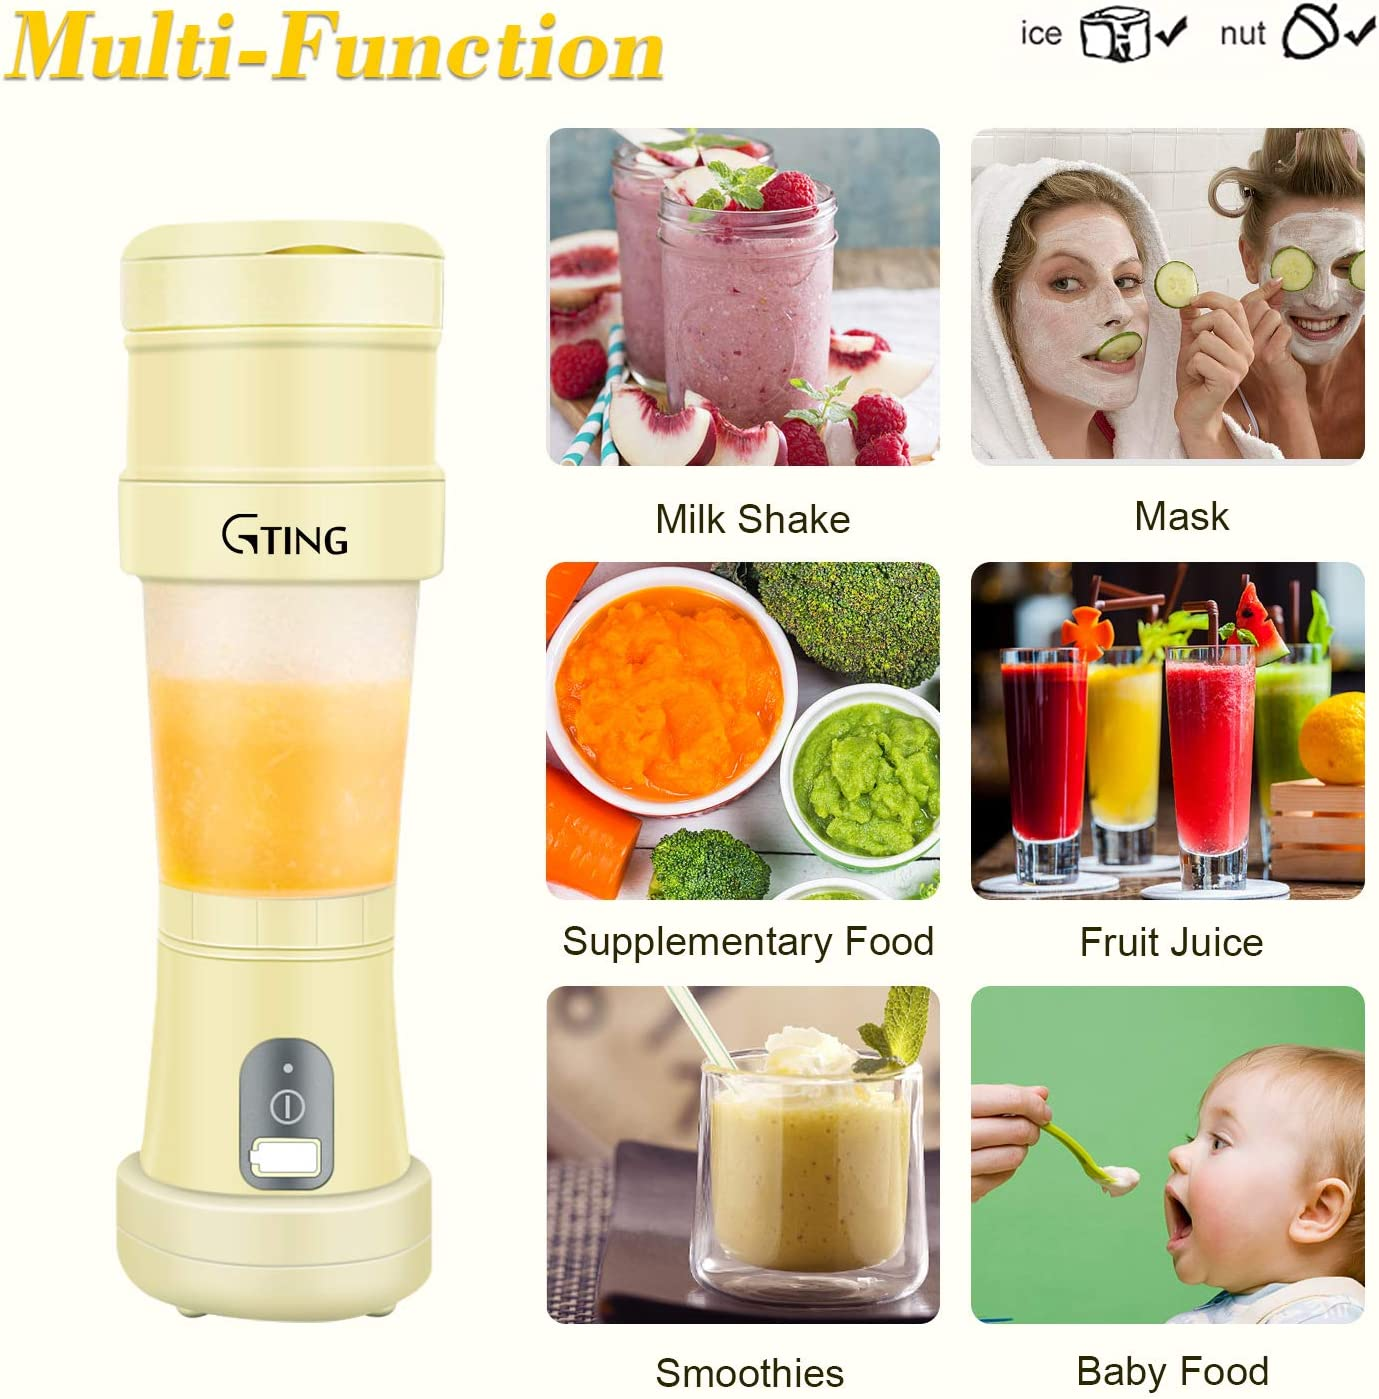 G-TING Collapsible Personal Smoothies Blender Cordless Smoothies Single Serve Mini Blender 500ml USB Rechargeable Small Juice Mixer Portable Juicer Shakes Portable Blender Travel /& Gym Home